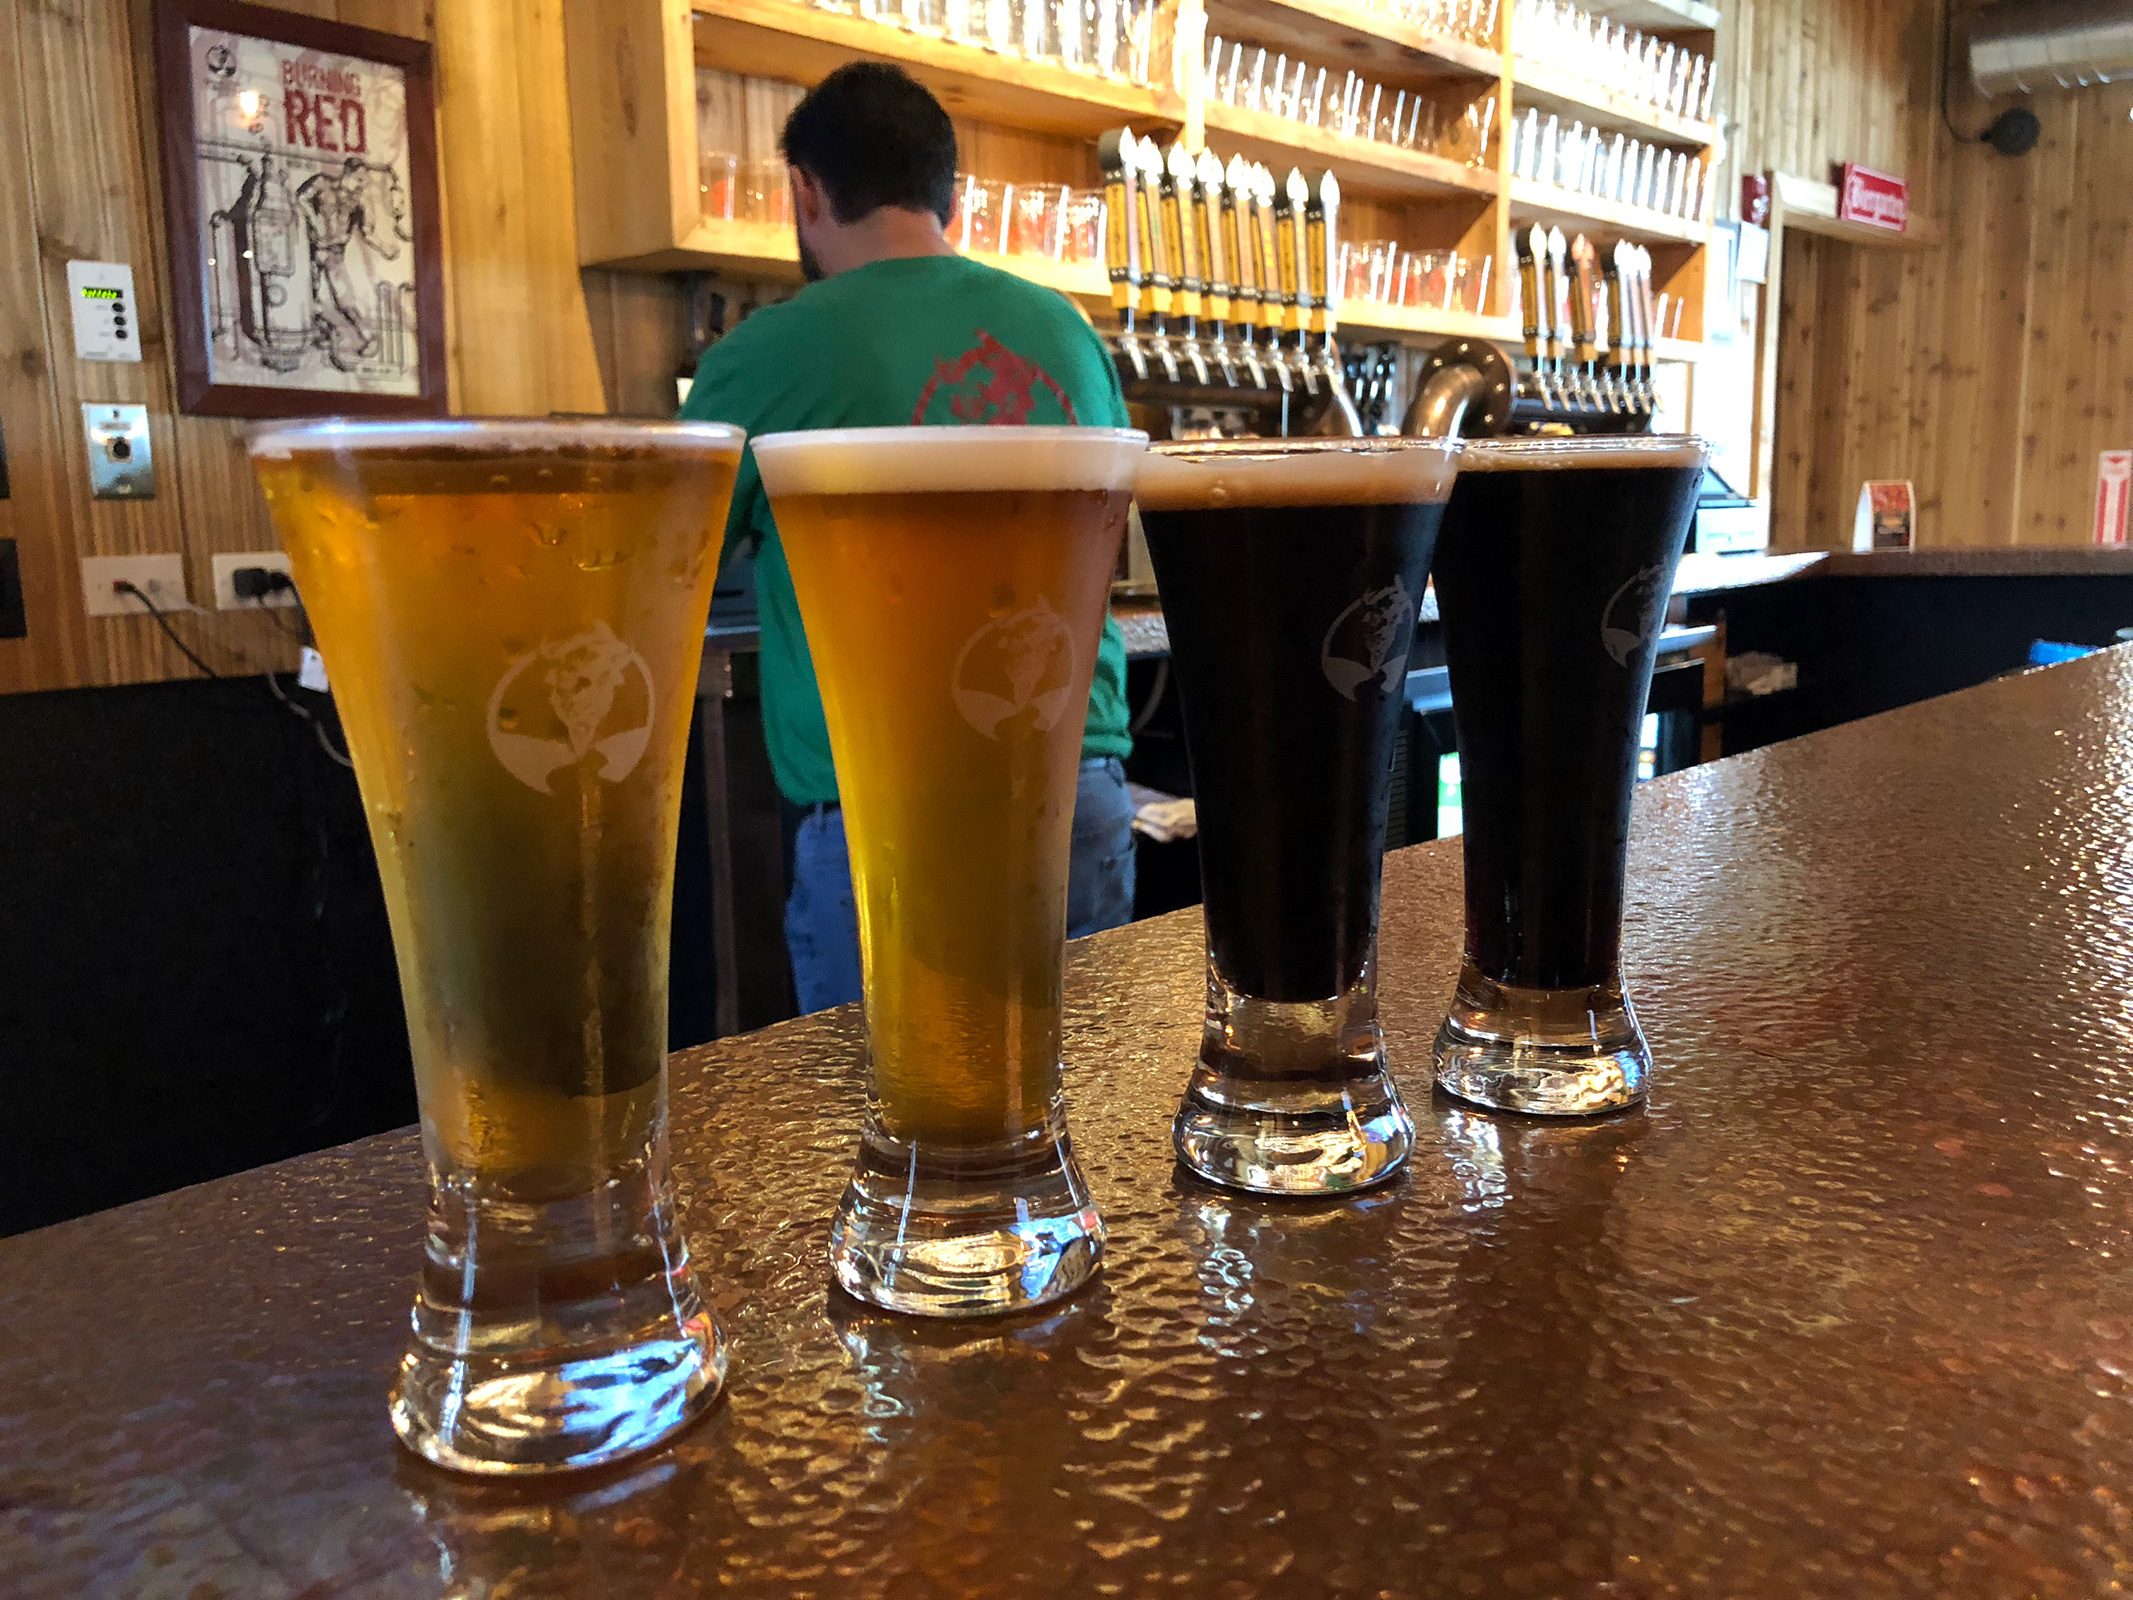 Buffalo Creek Brewing in Long Grove, IL by Jets Like Taxis / Hopsmash